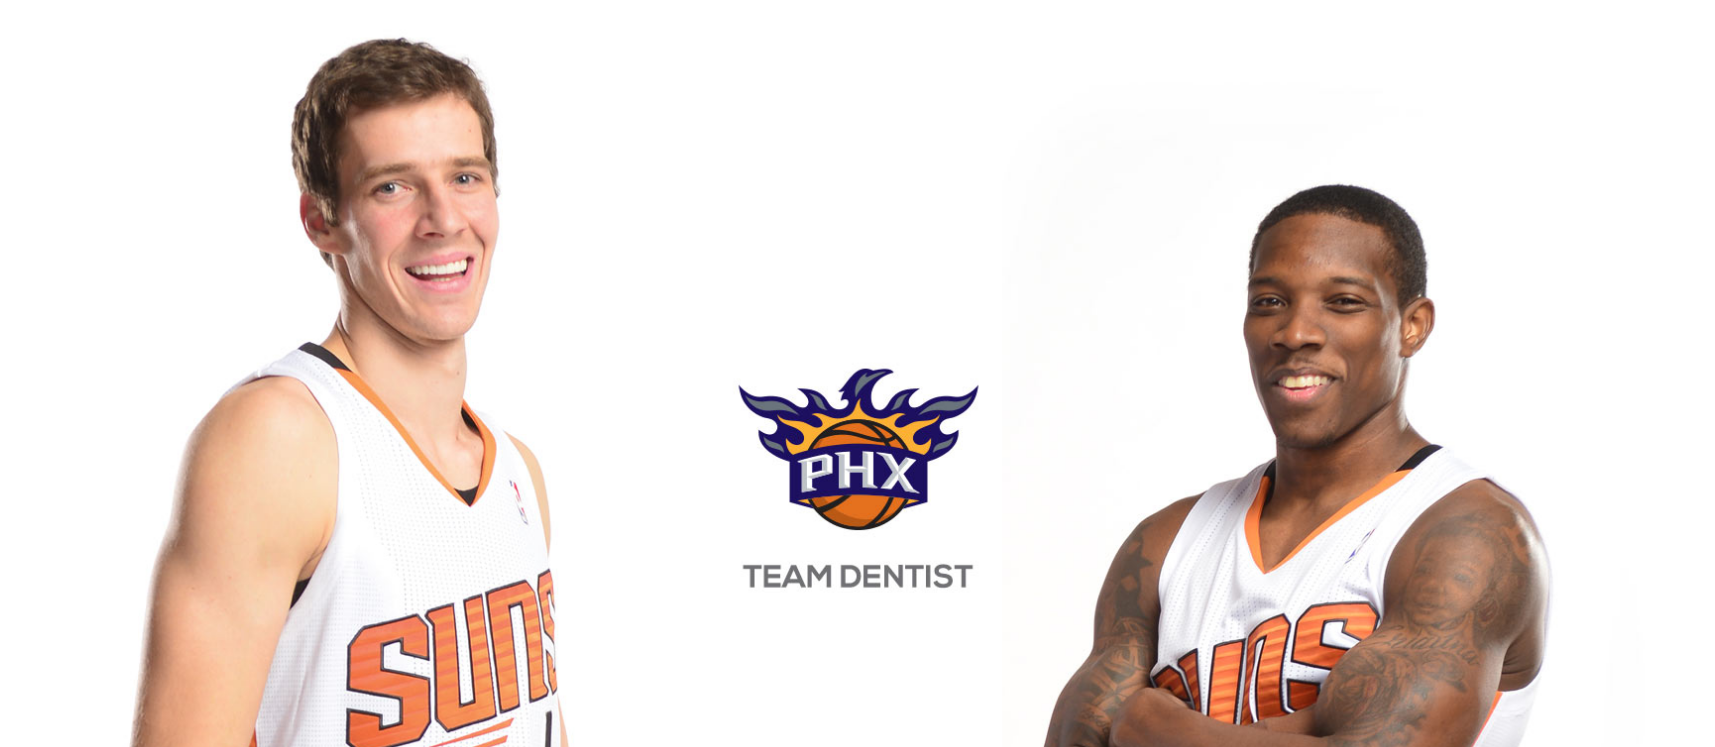 dentist for the phoenix suns